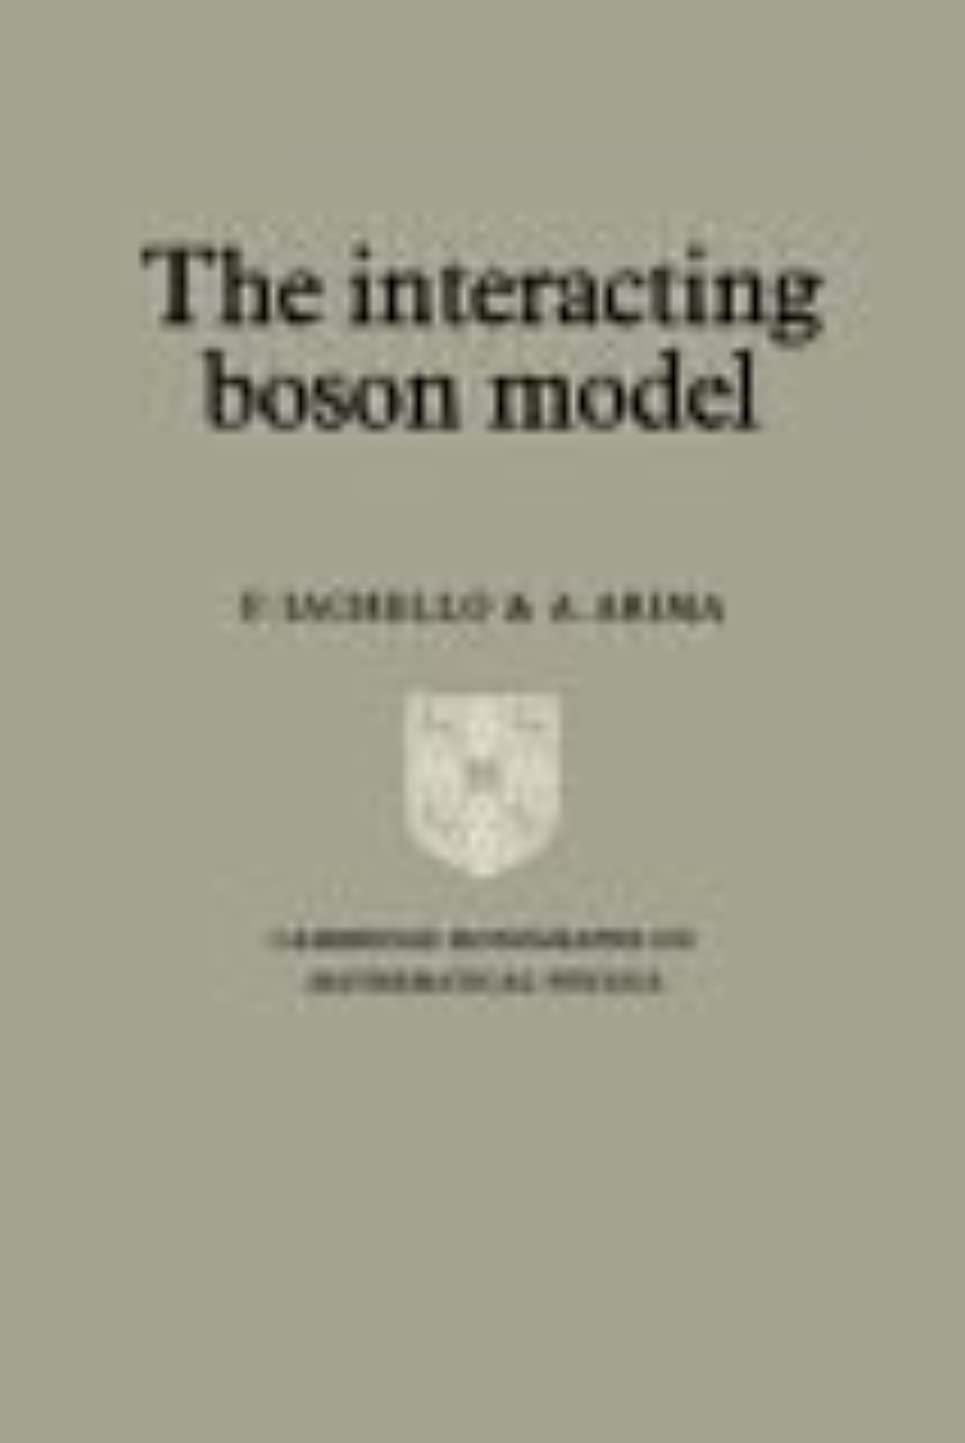 バンケット慎重に論争The Interacting Boson Model (Cambridge Monographs on Mathematical Physics)